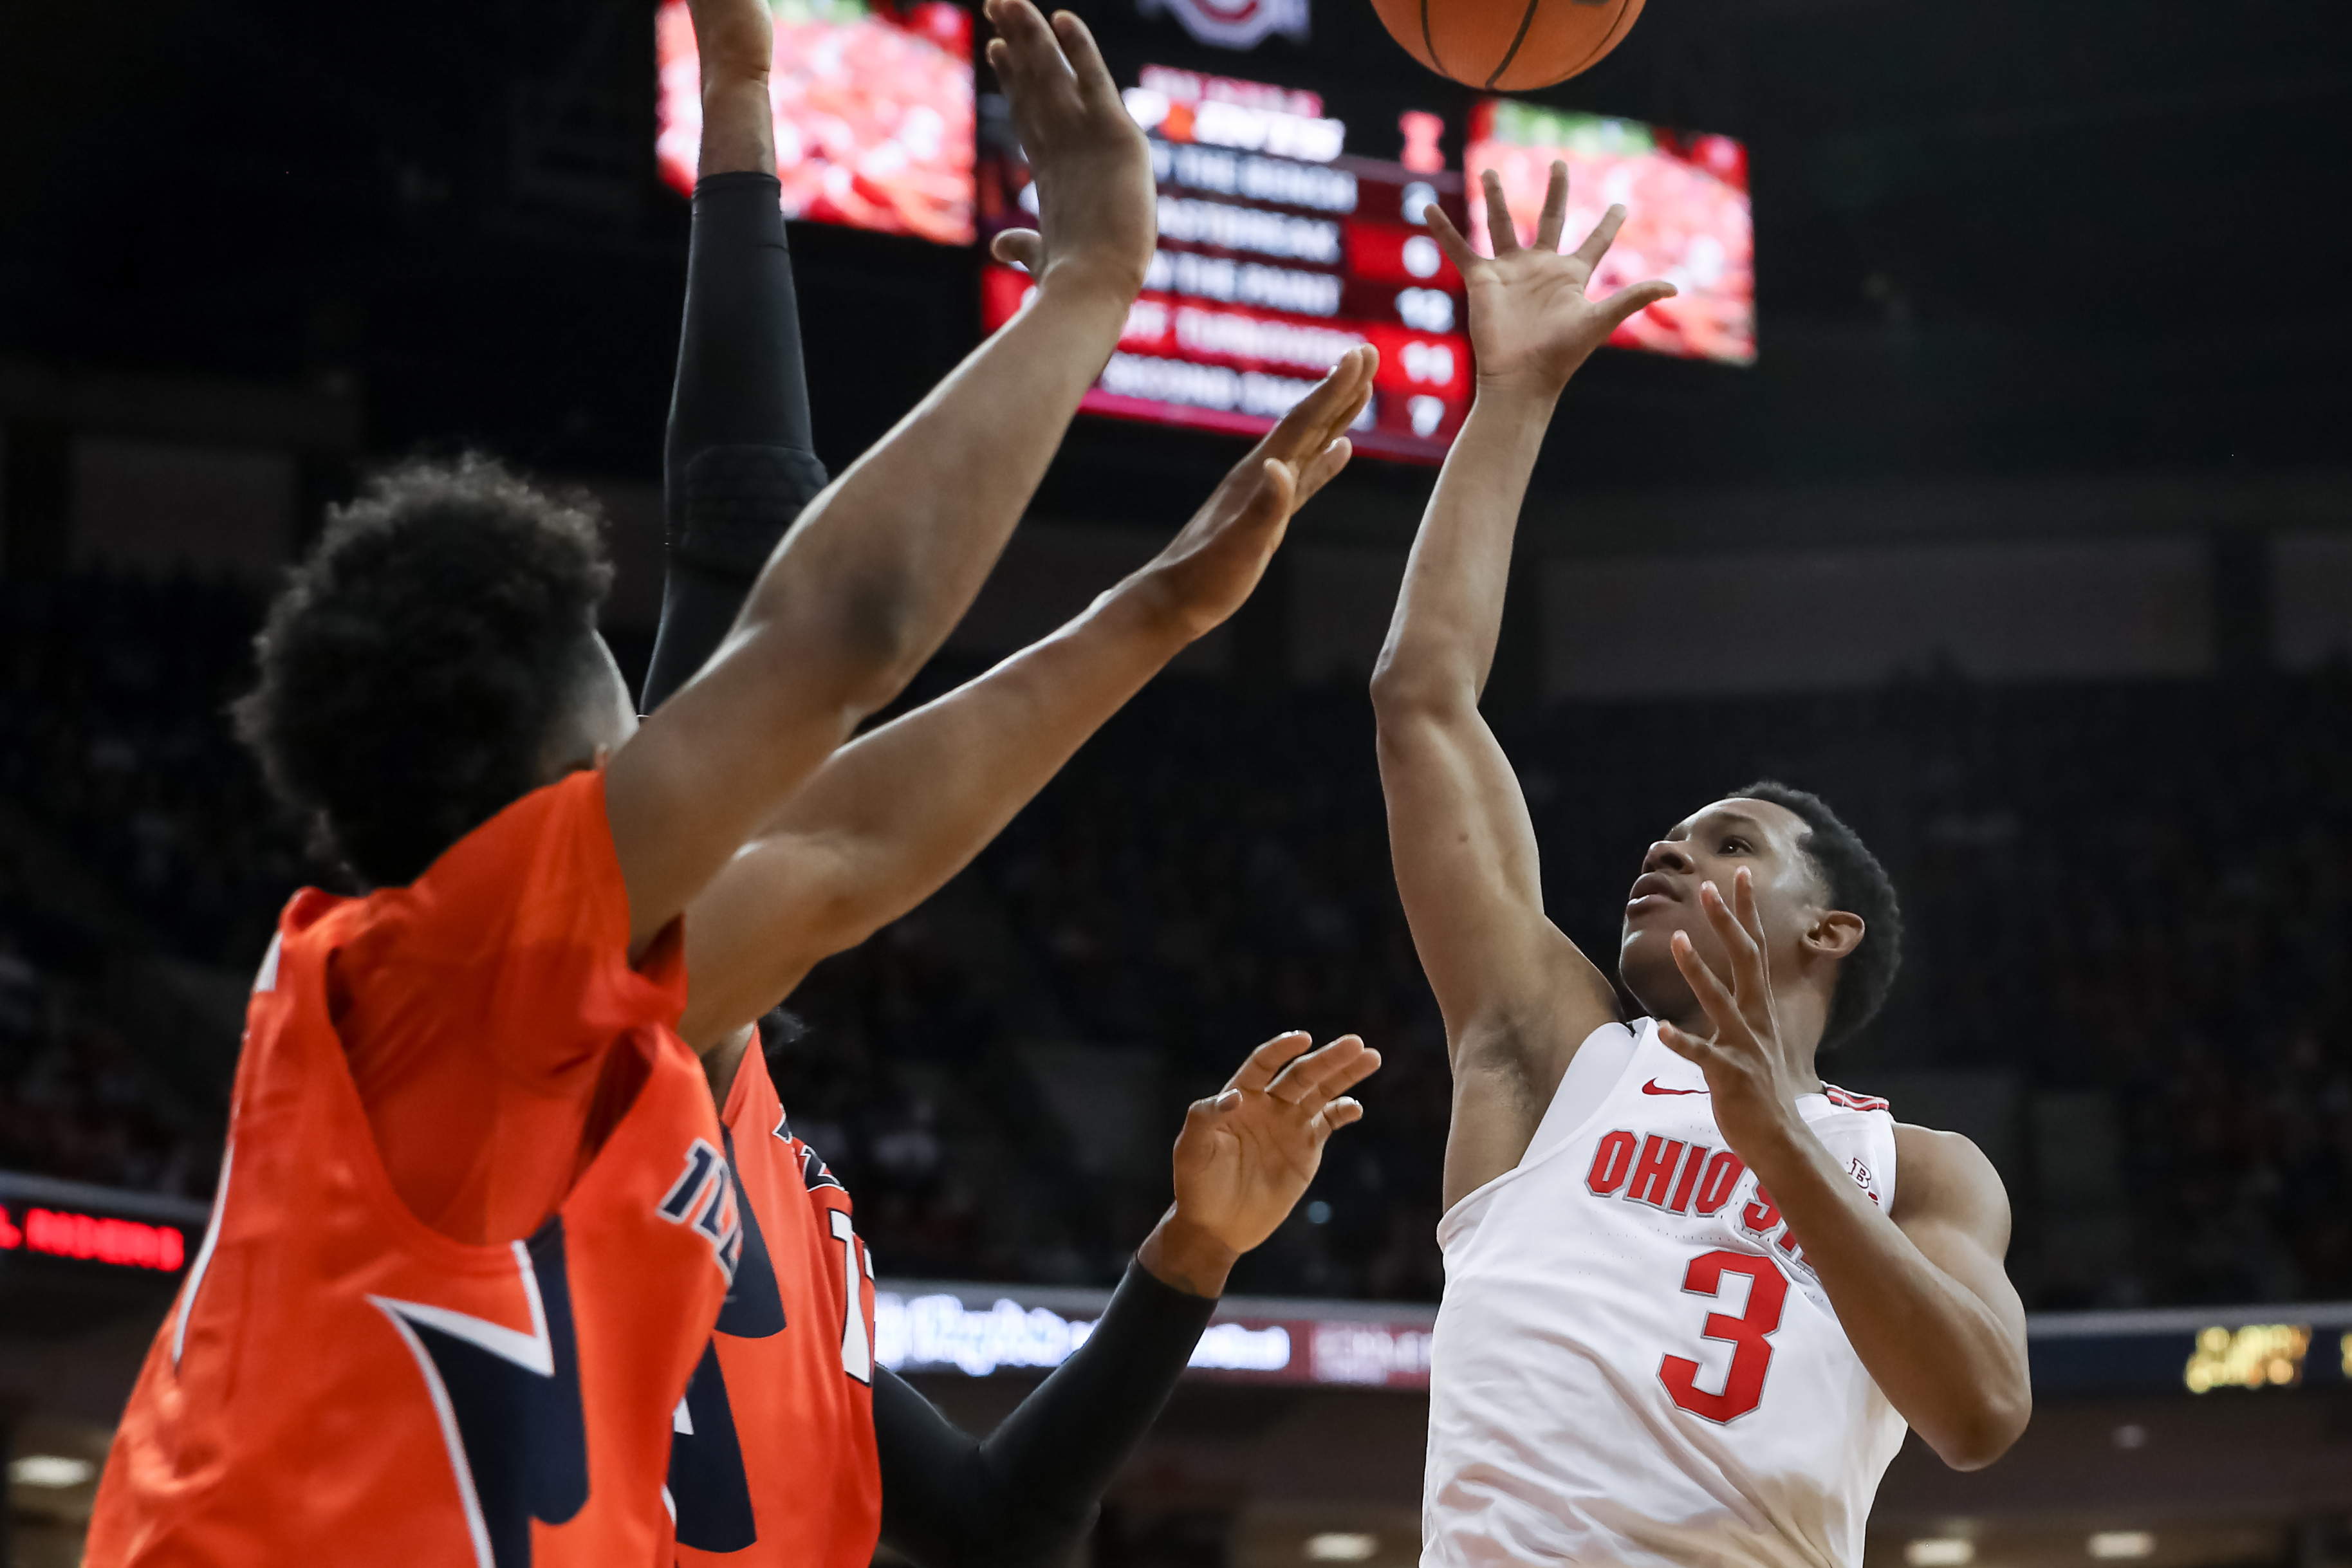 Illini travel to No. 17 Ohio State